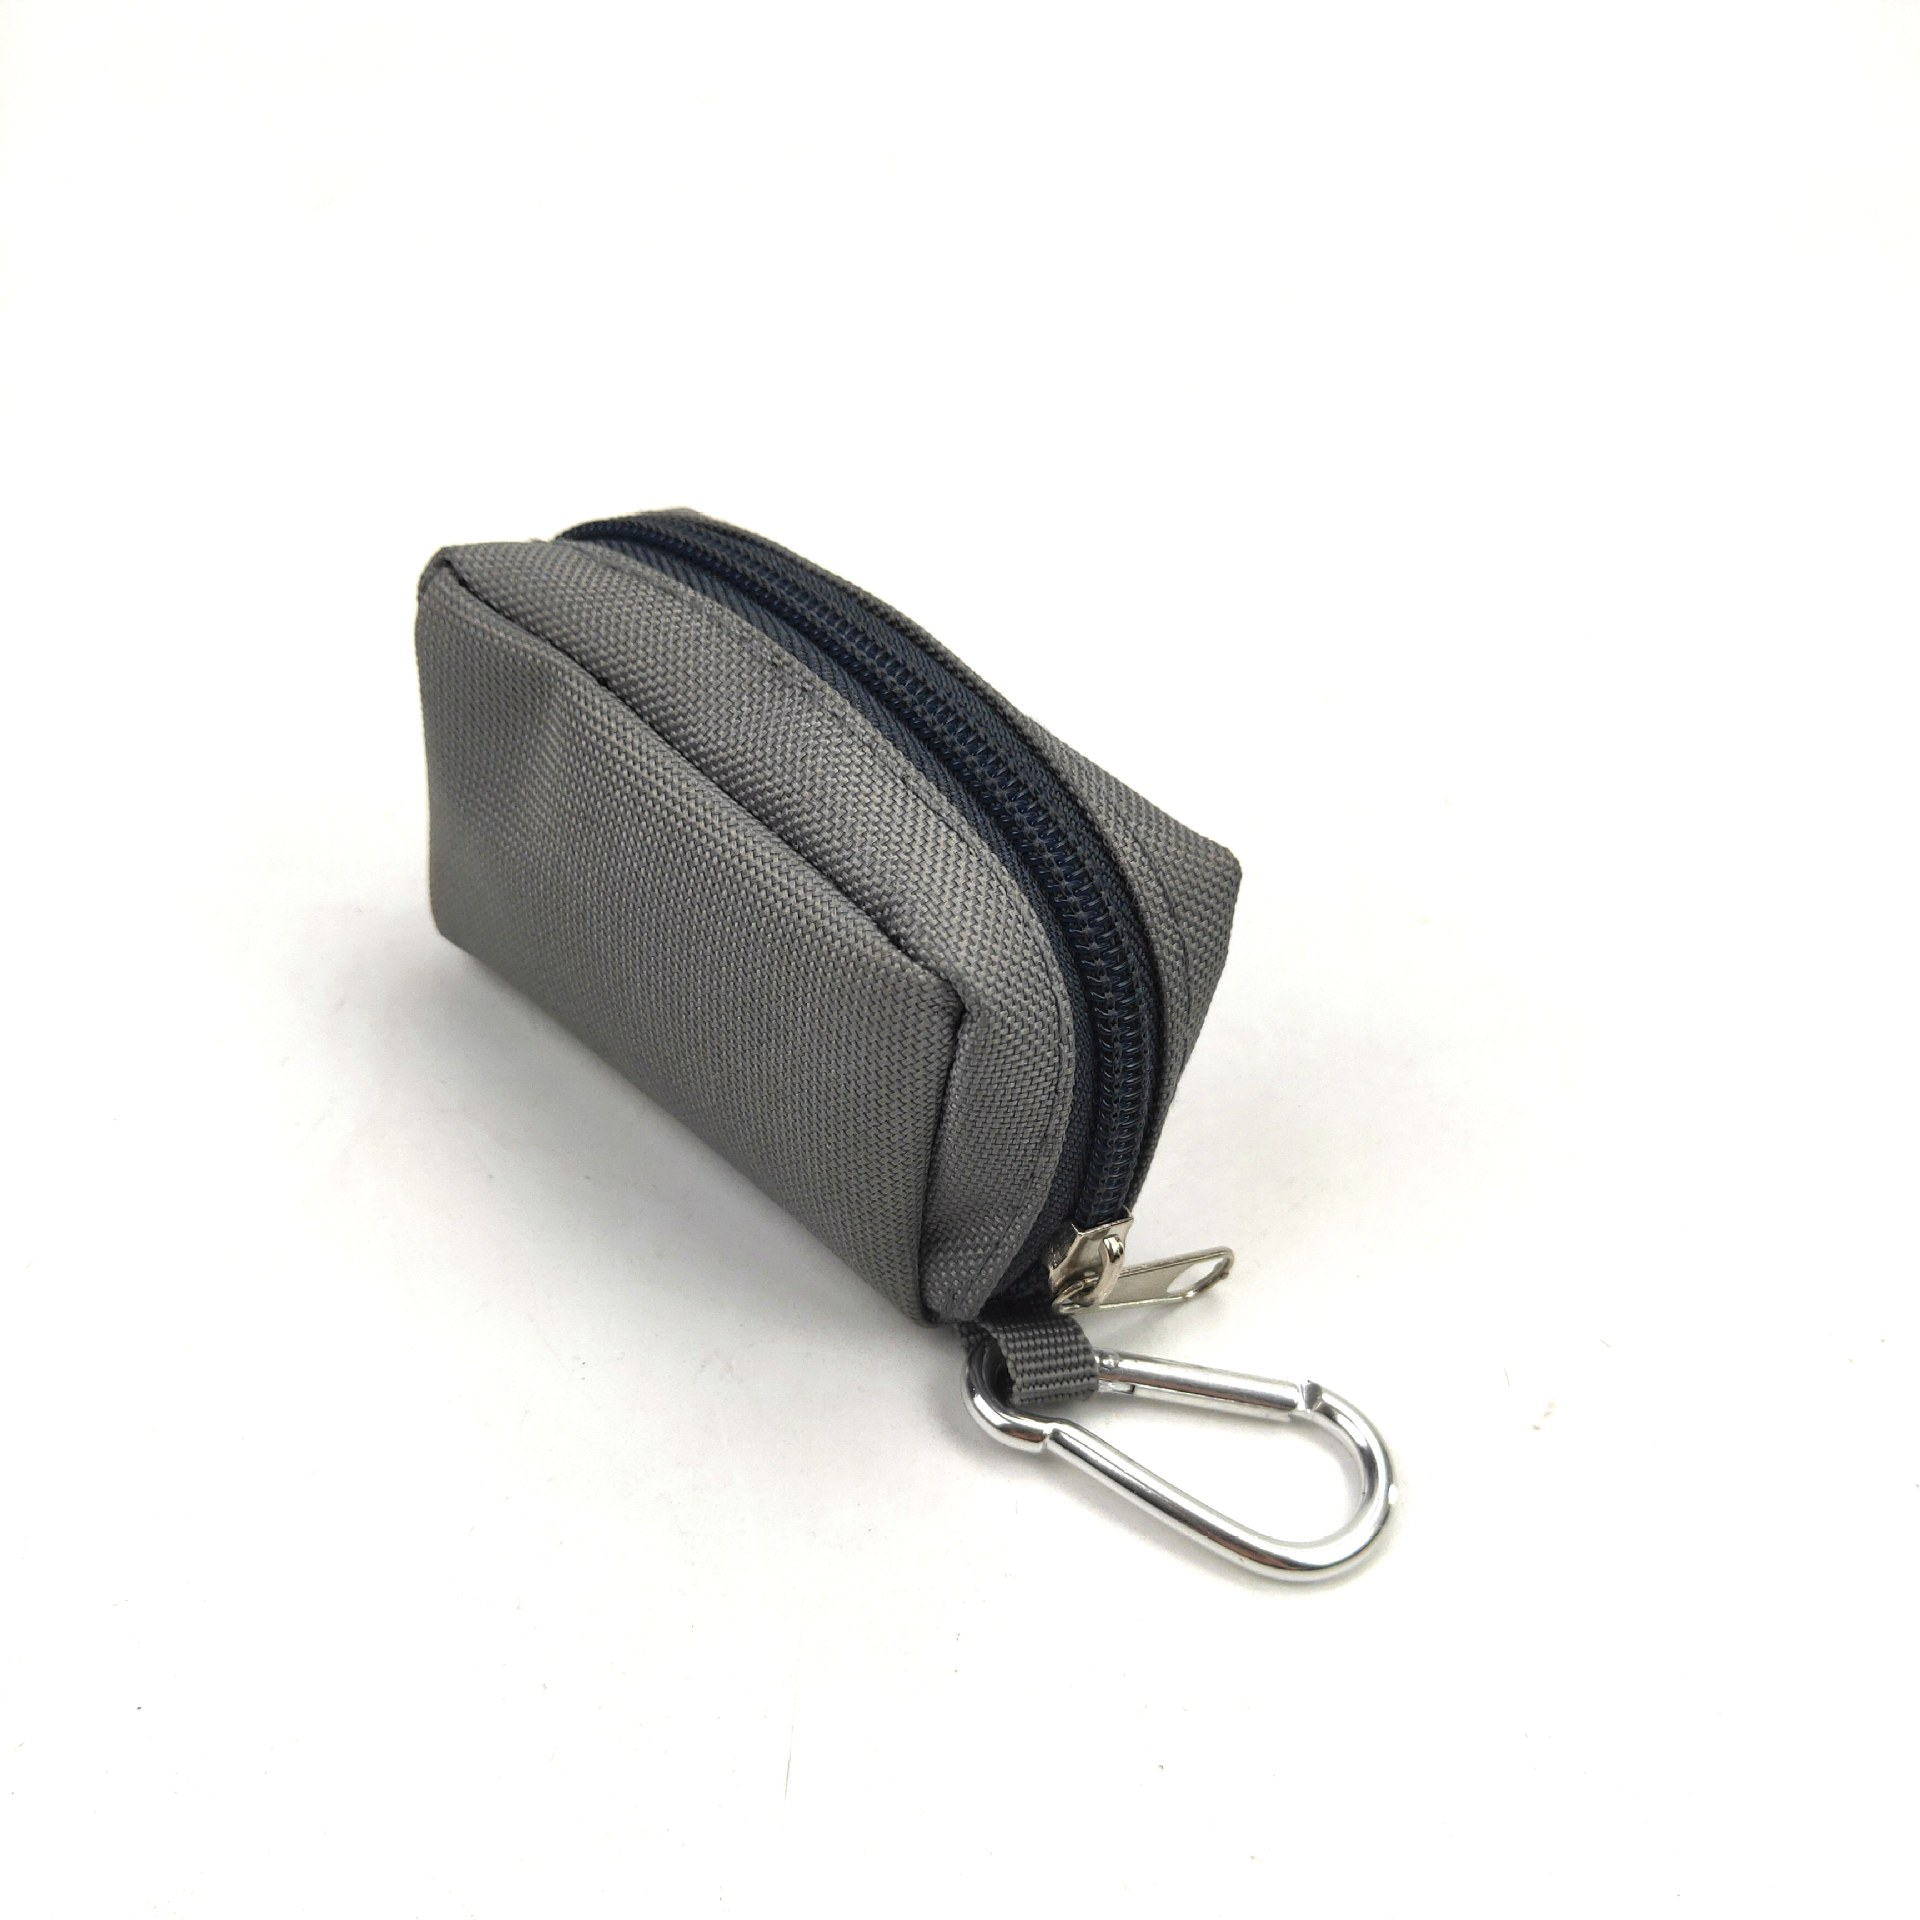 Portable and Small Coin Purse for Everyday Men's Wallets